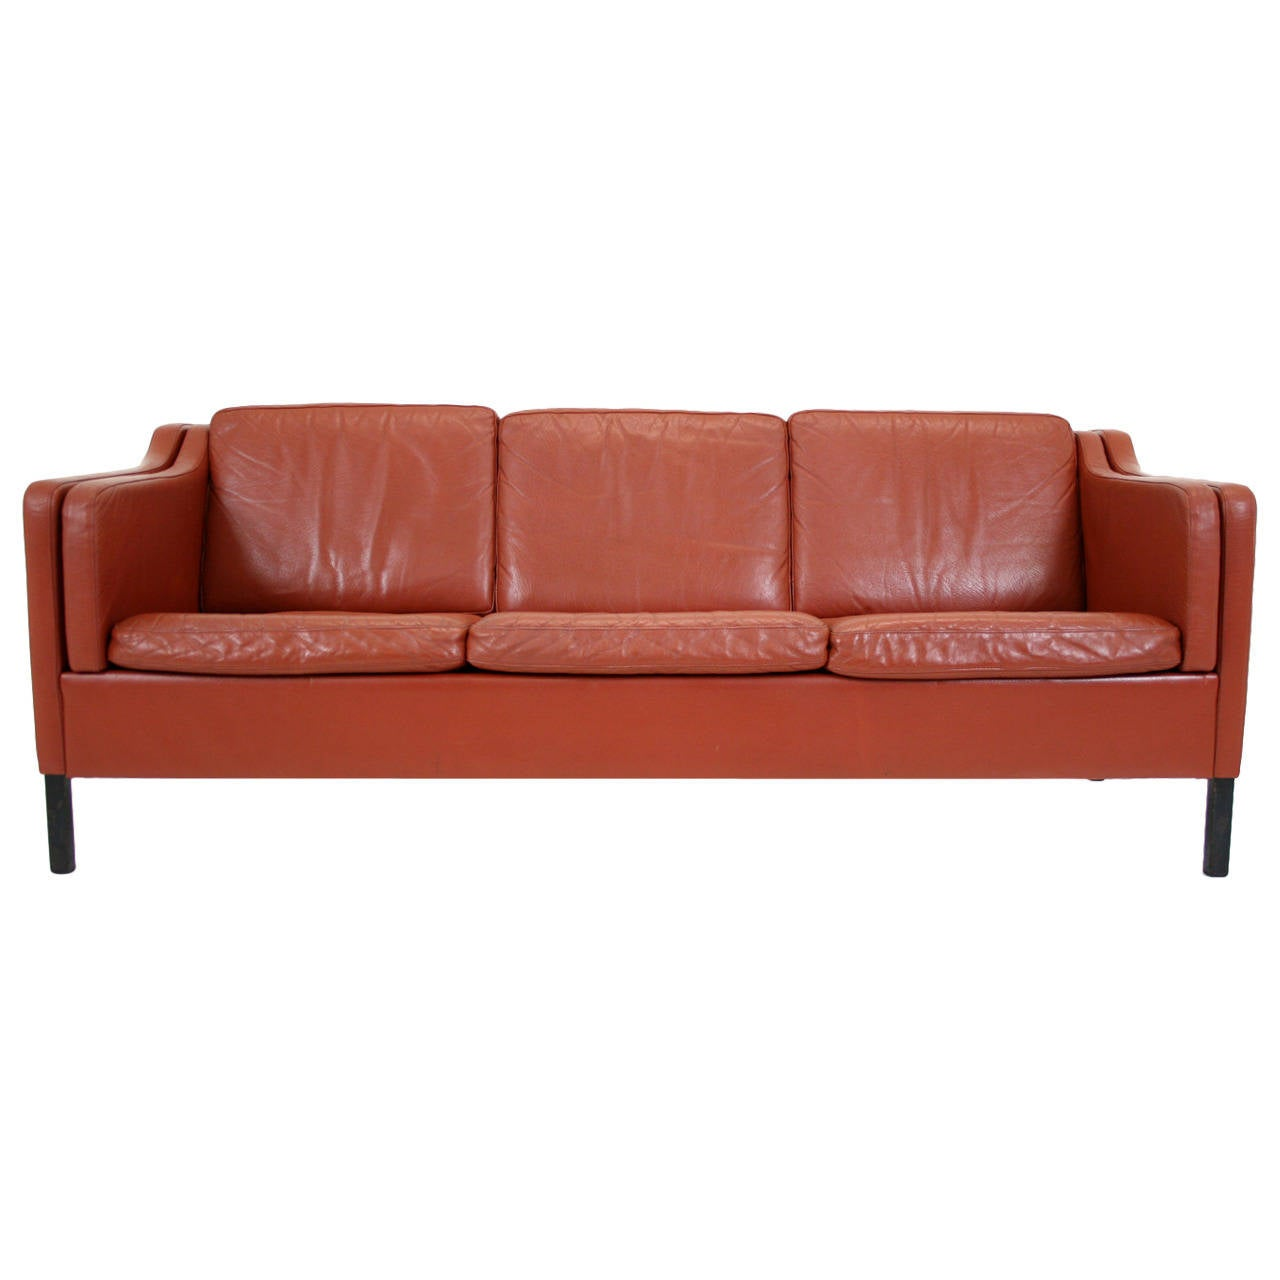 Danish Mid Century Modern Leather Three Seat Sofa Or Loveseat At 1stdibs